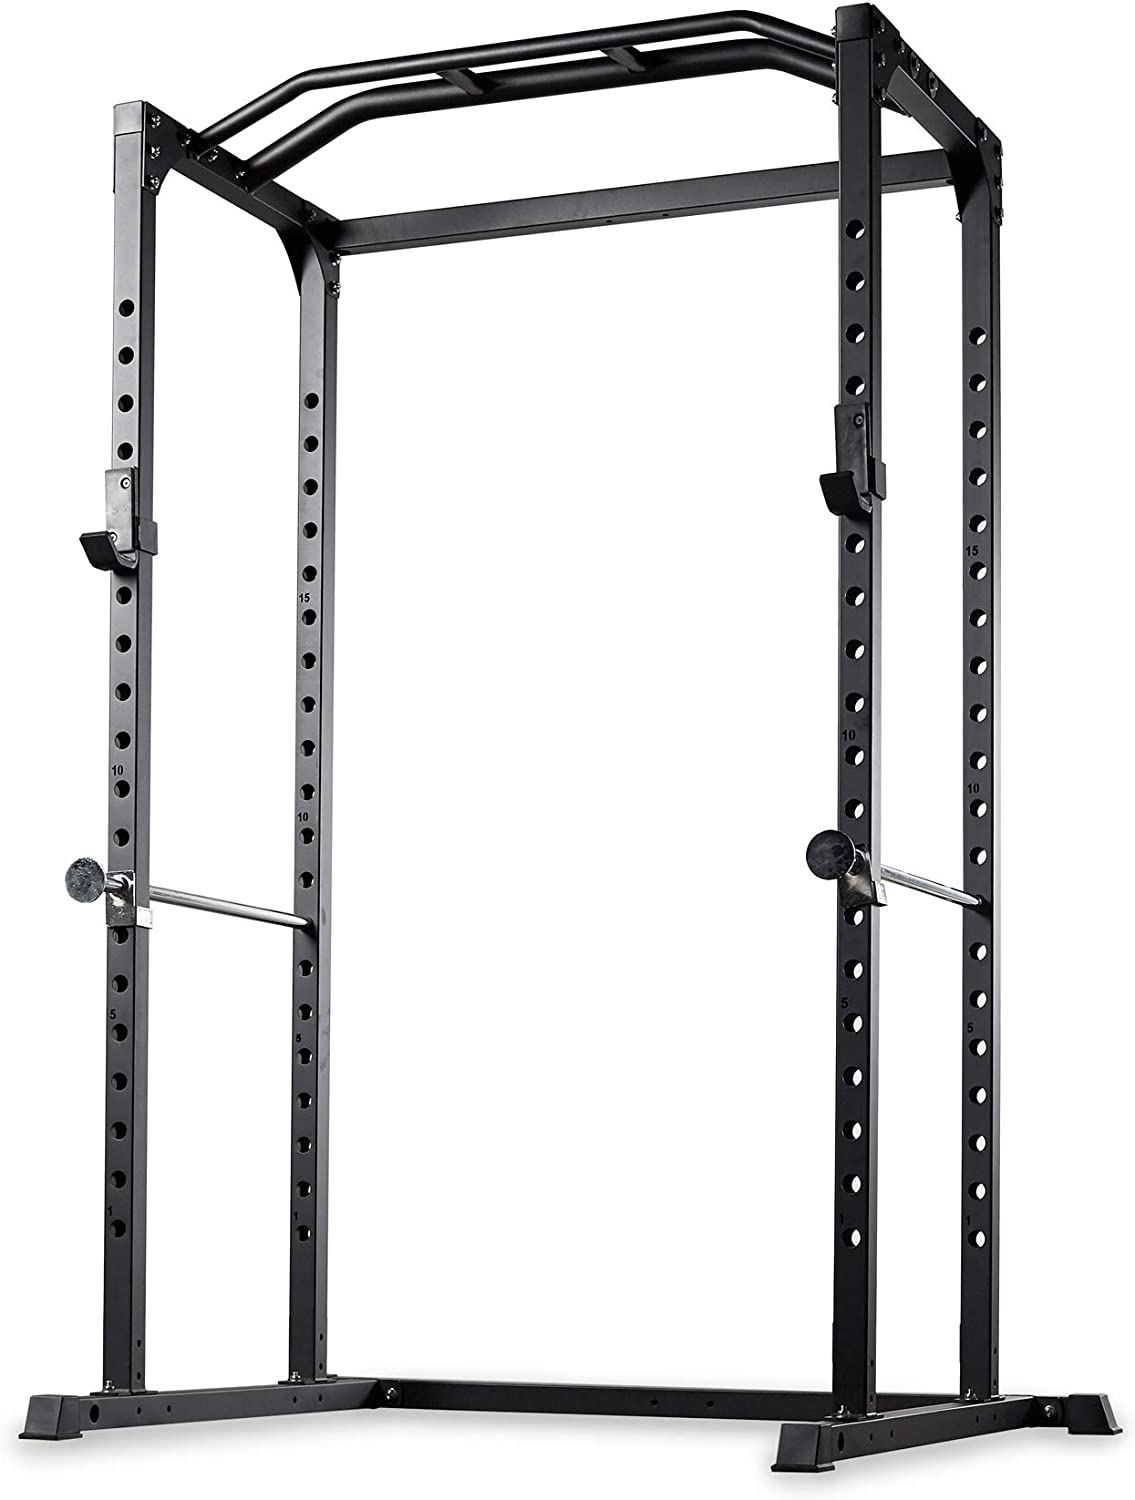 REP FITNESS PR-1100 Power Rack – 1,000 lbs Rated Lifting Cage for Weight Training